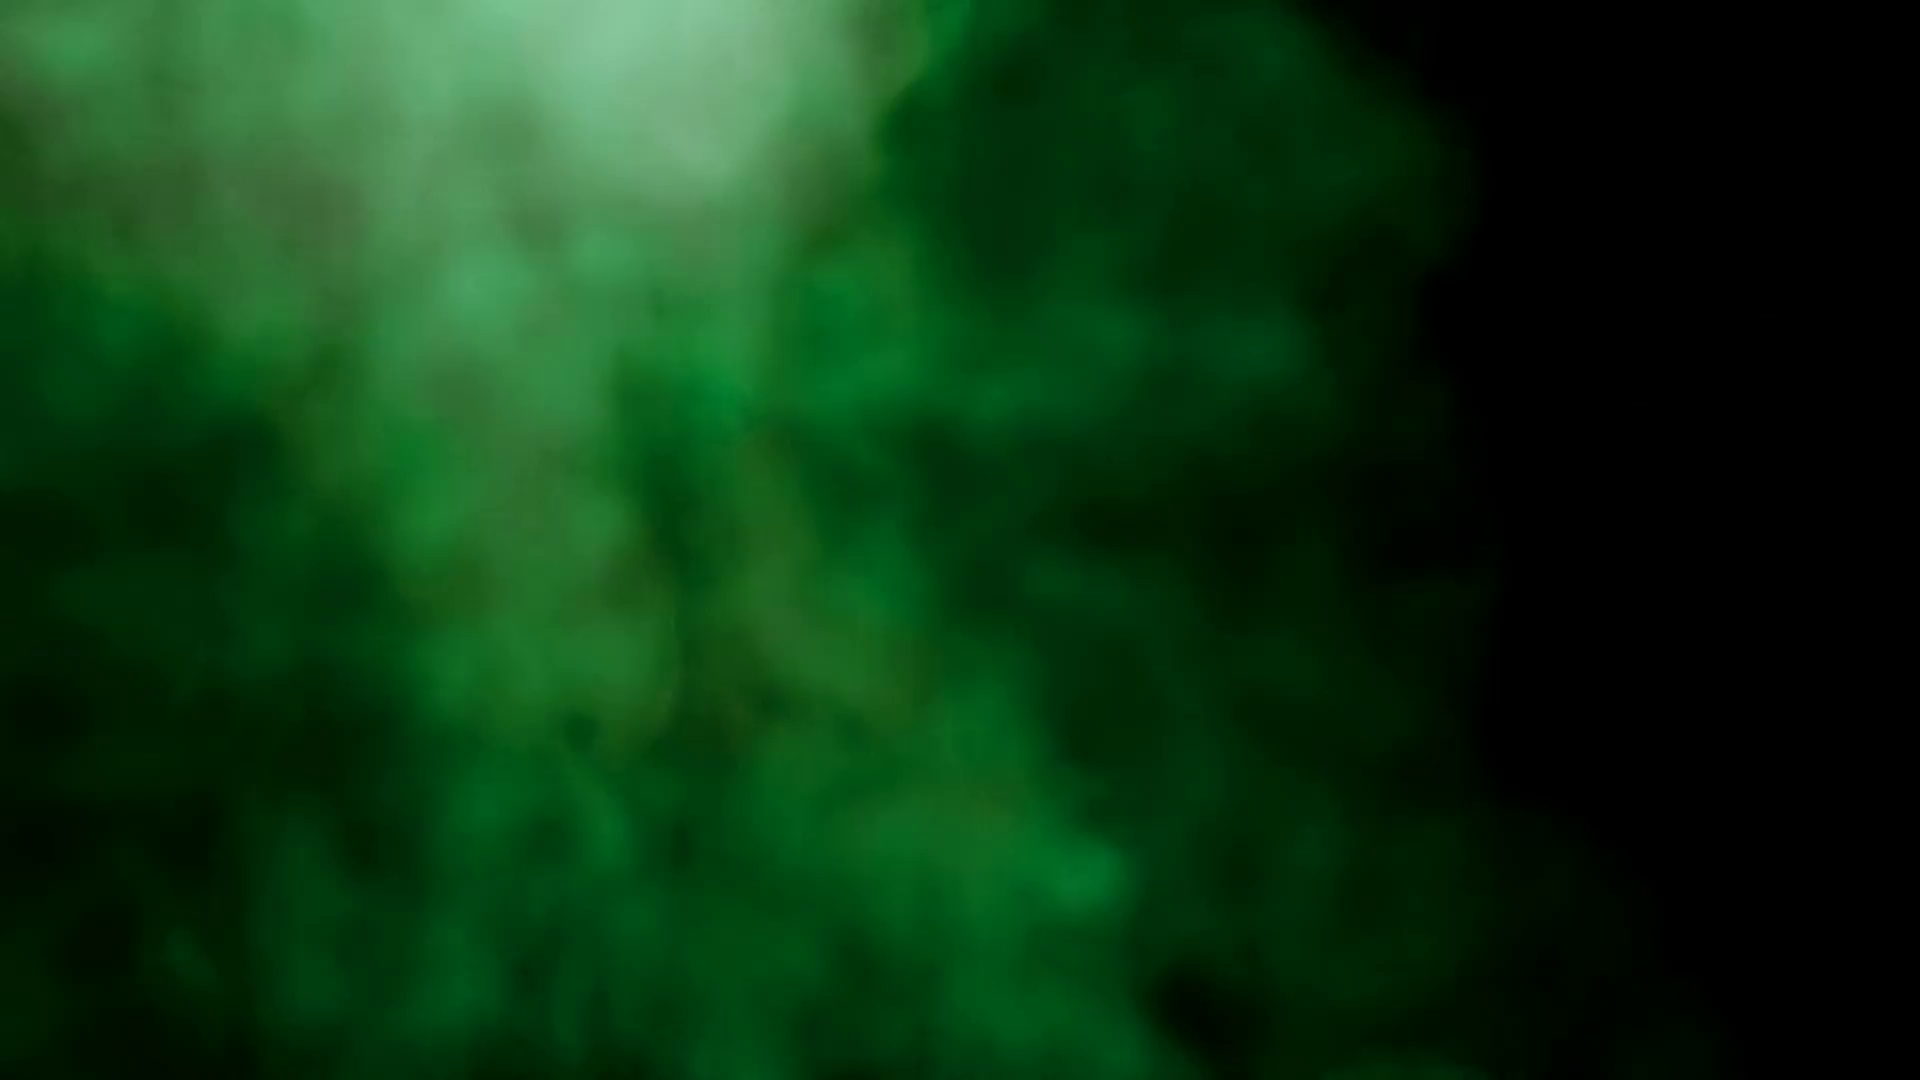 smoke colorful green on black background. abstract smoke background